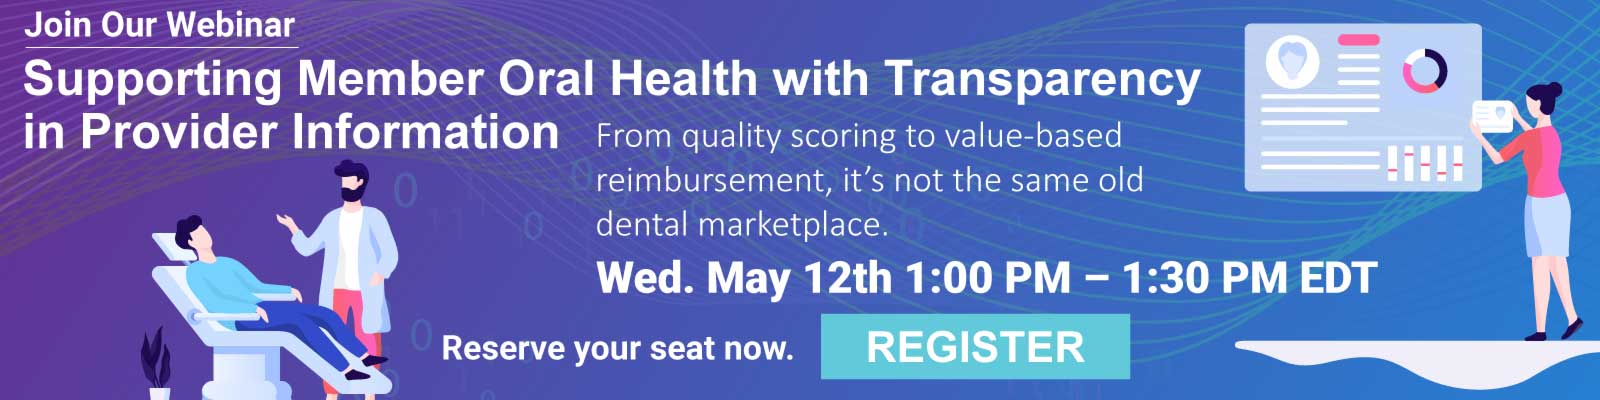 Register for the May 12, 2021 webinar -- Supporting Member Oral Health with Transparency in Provider Information